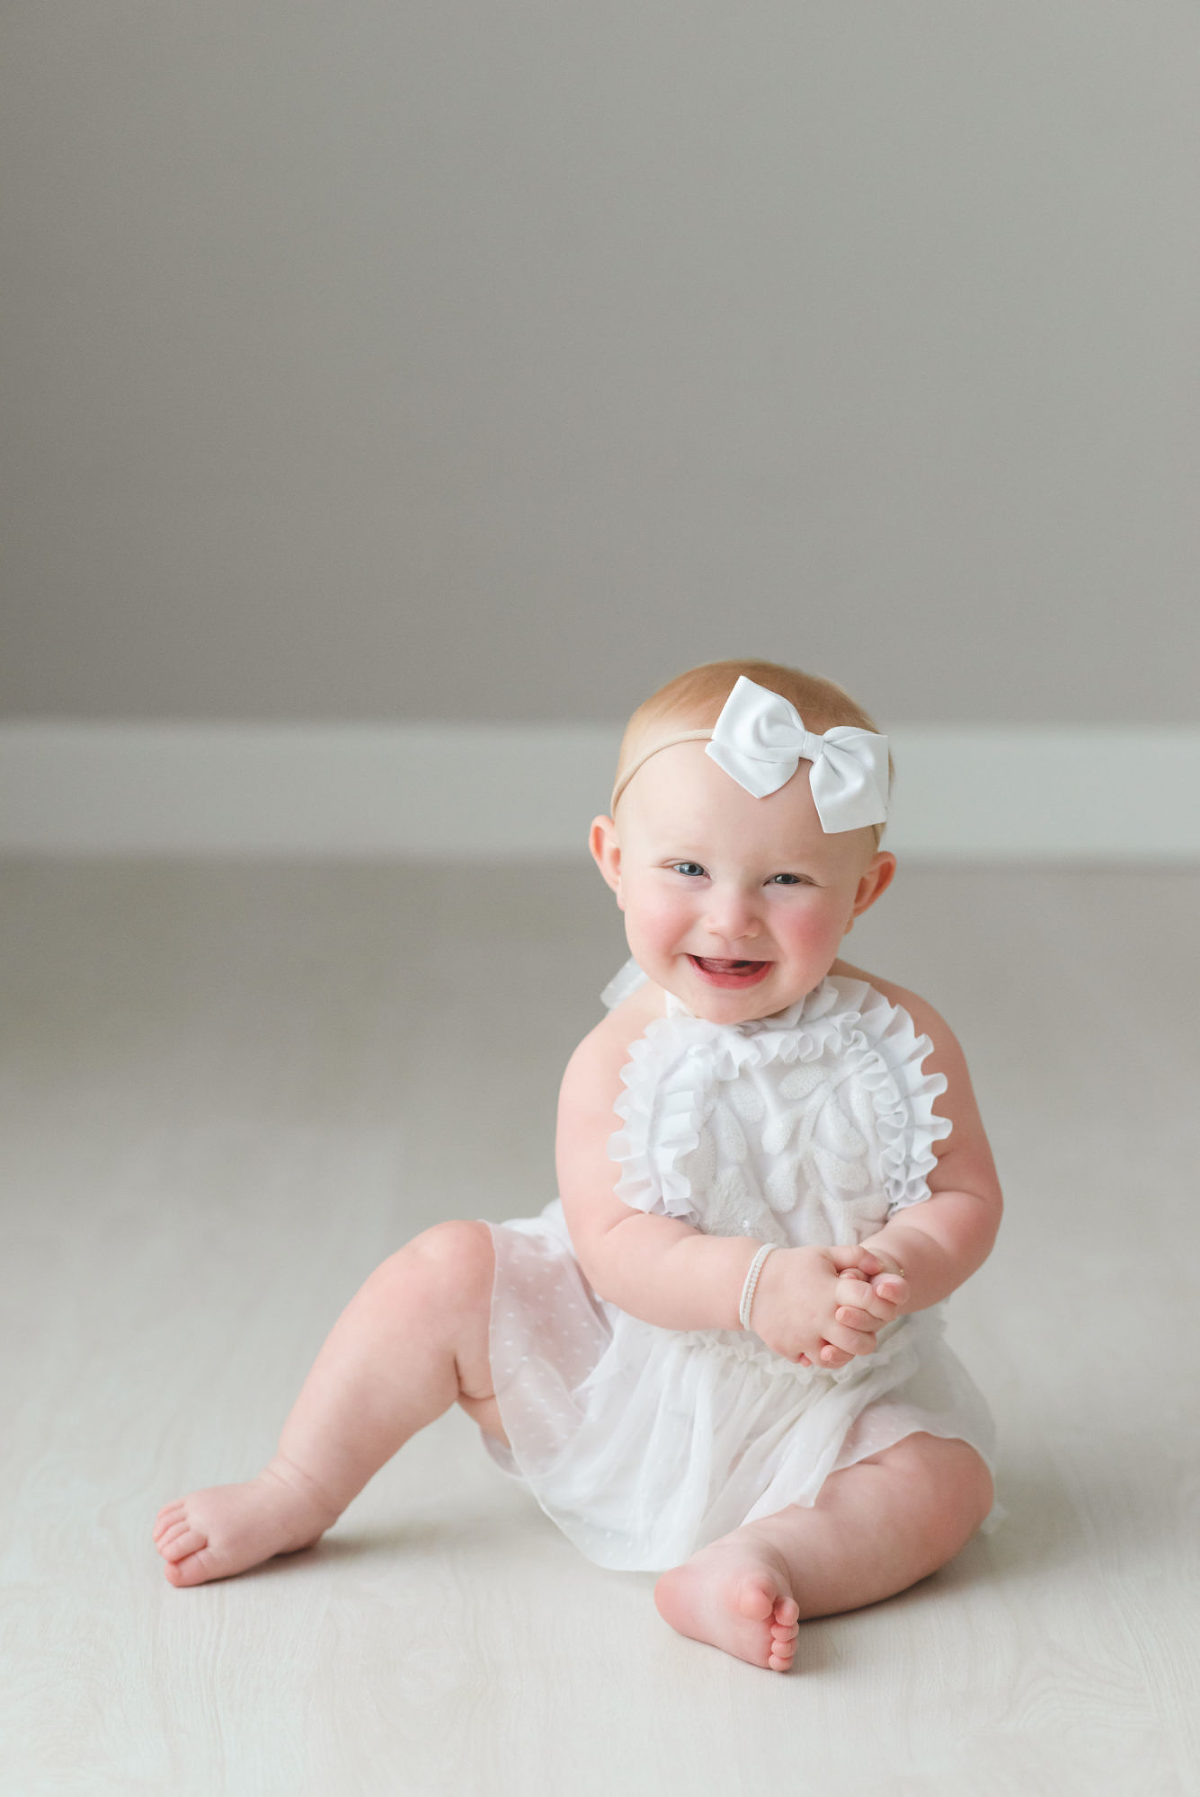 Scottsdale baby photographer | Reaj Roberts Photography